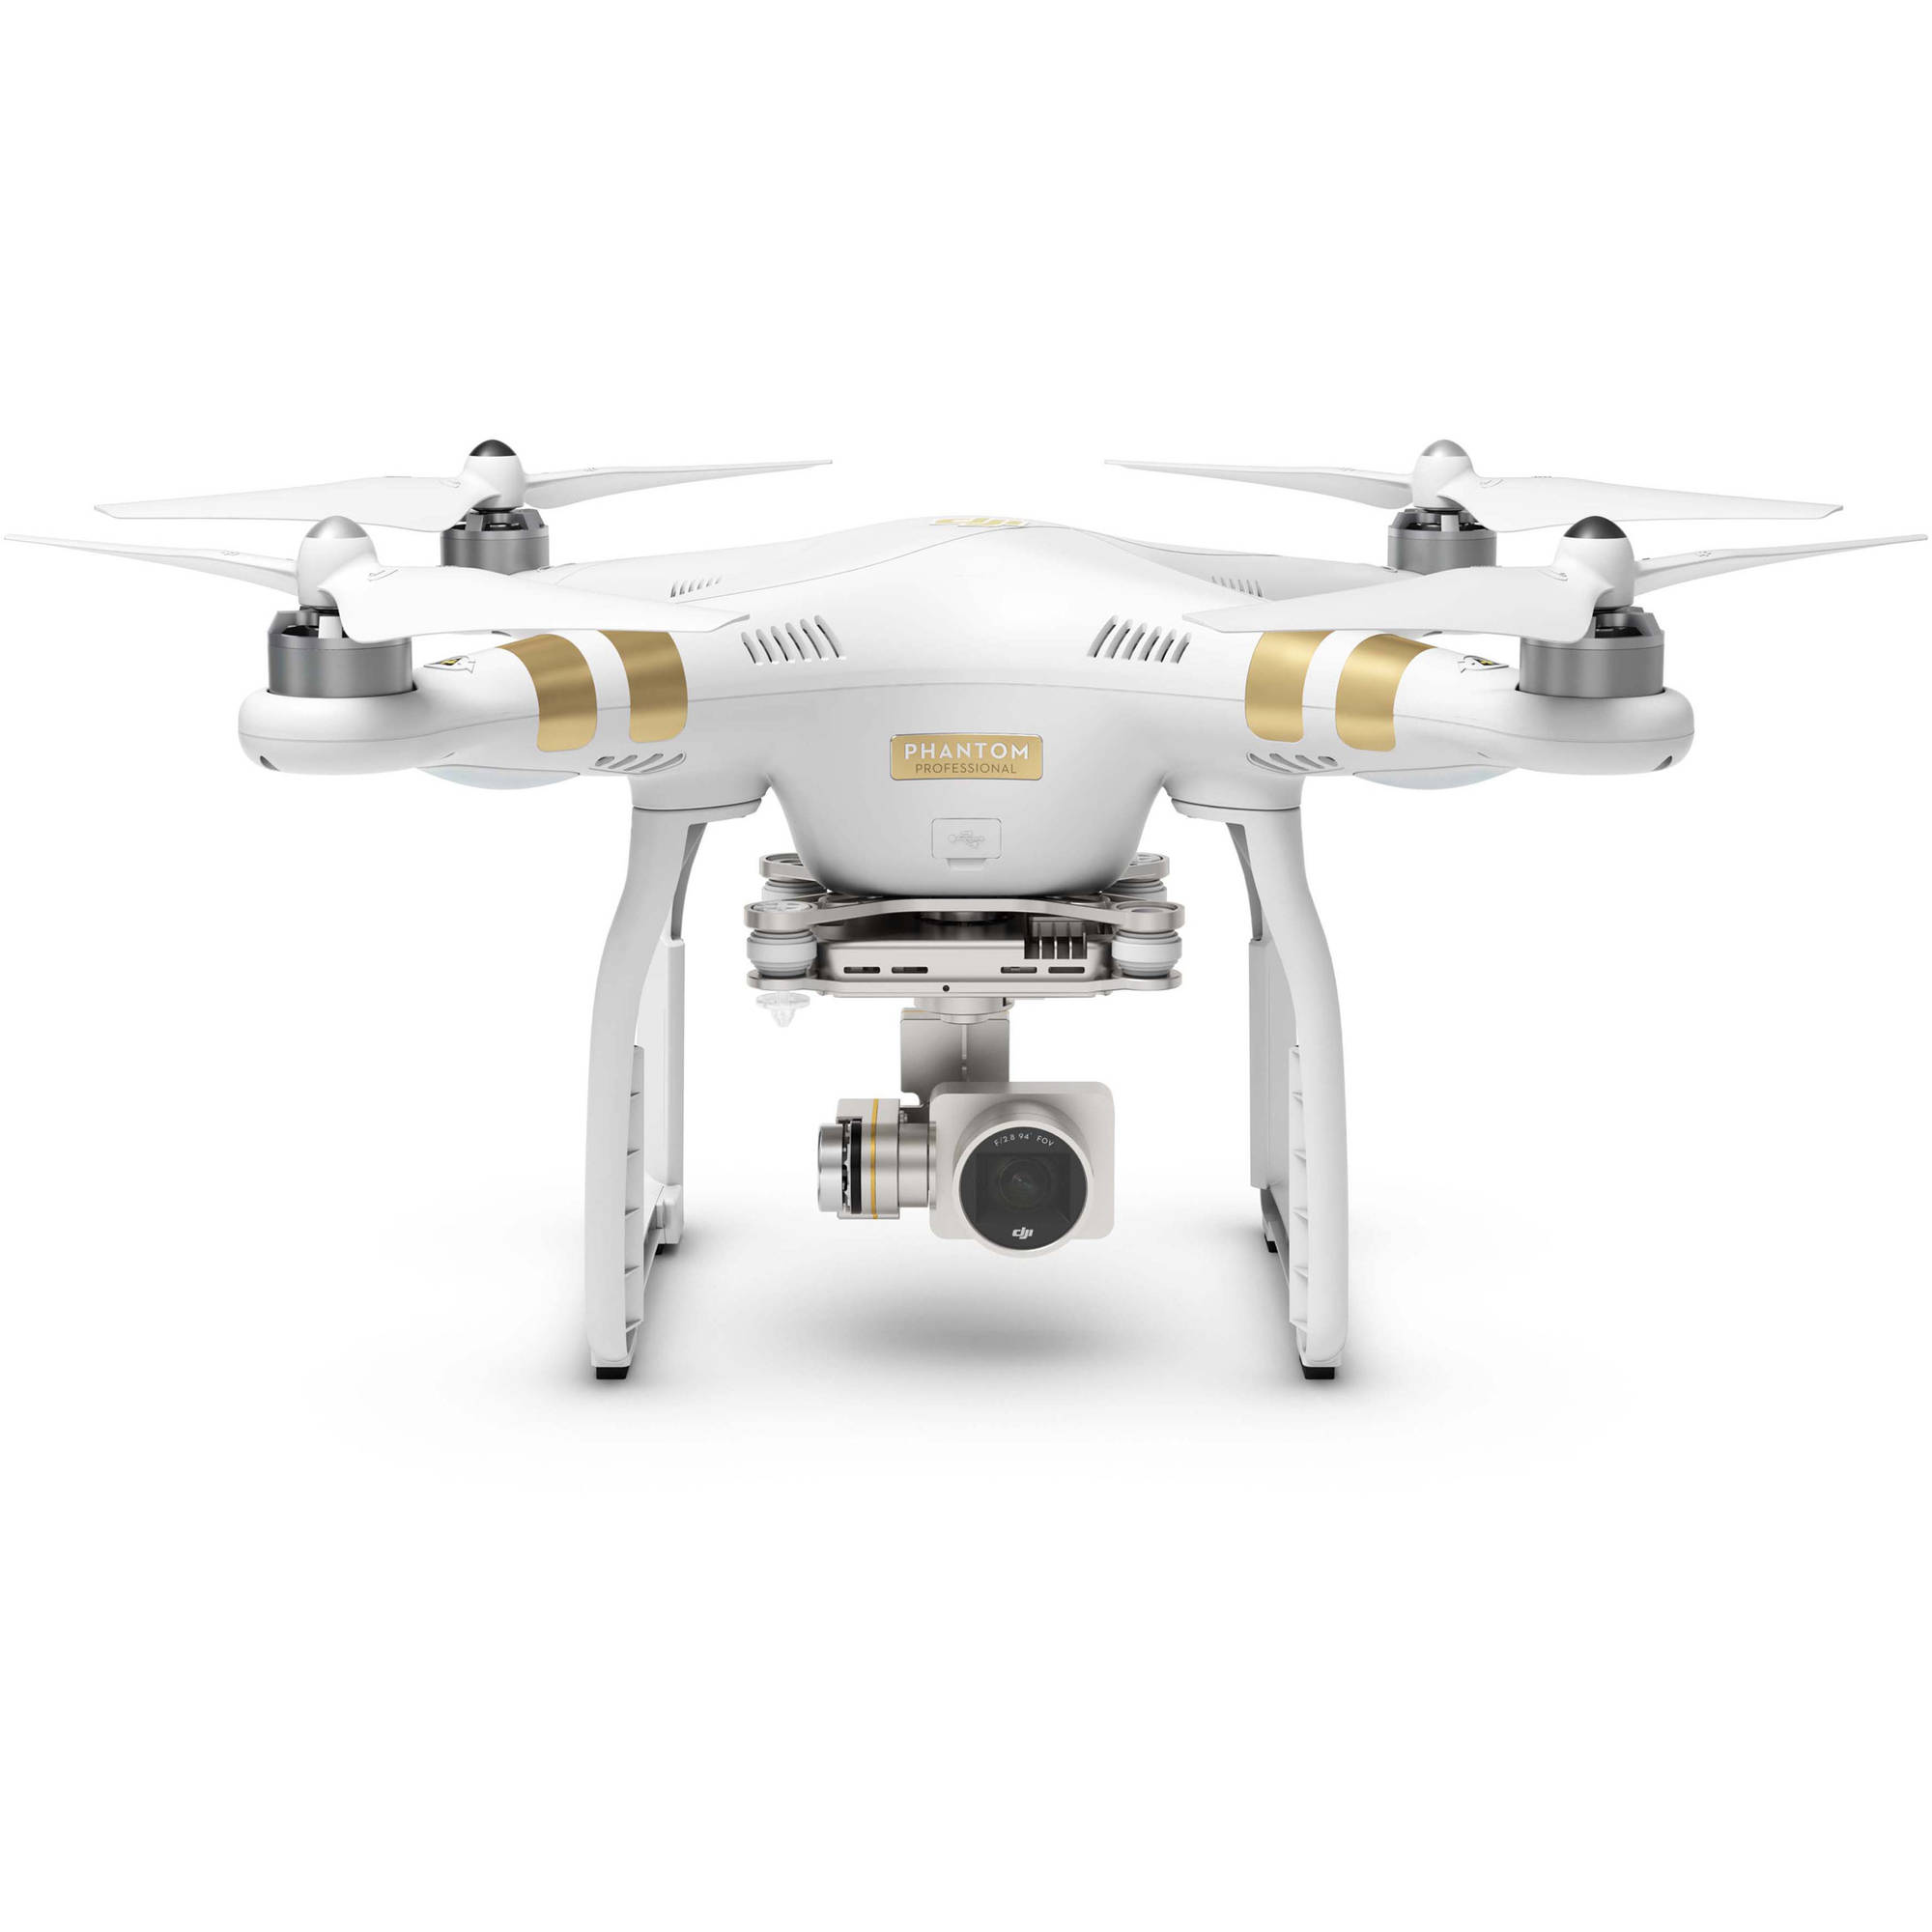 DJI Phantom 3 Professional Drone by DJI